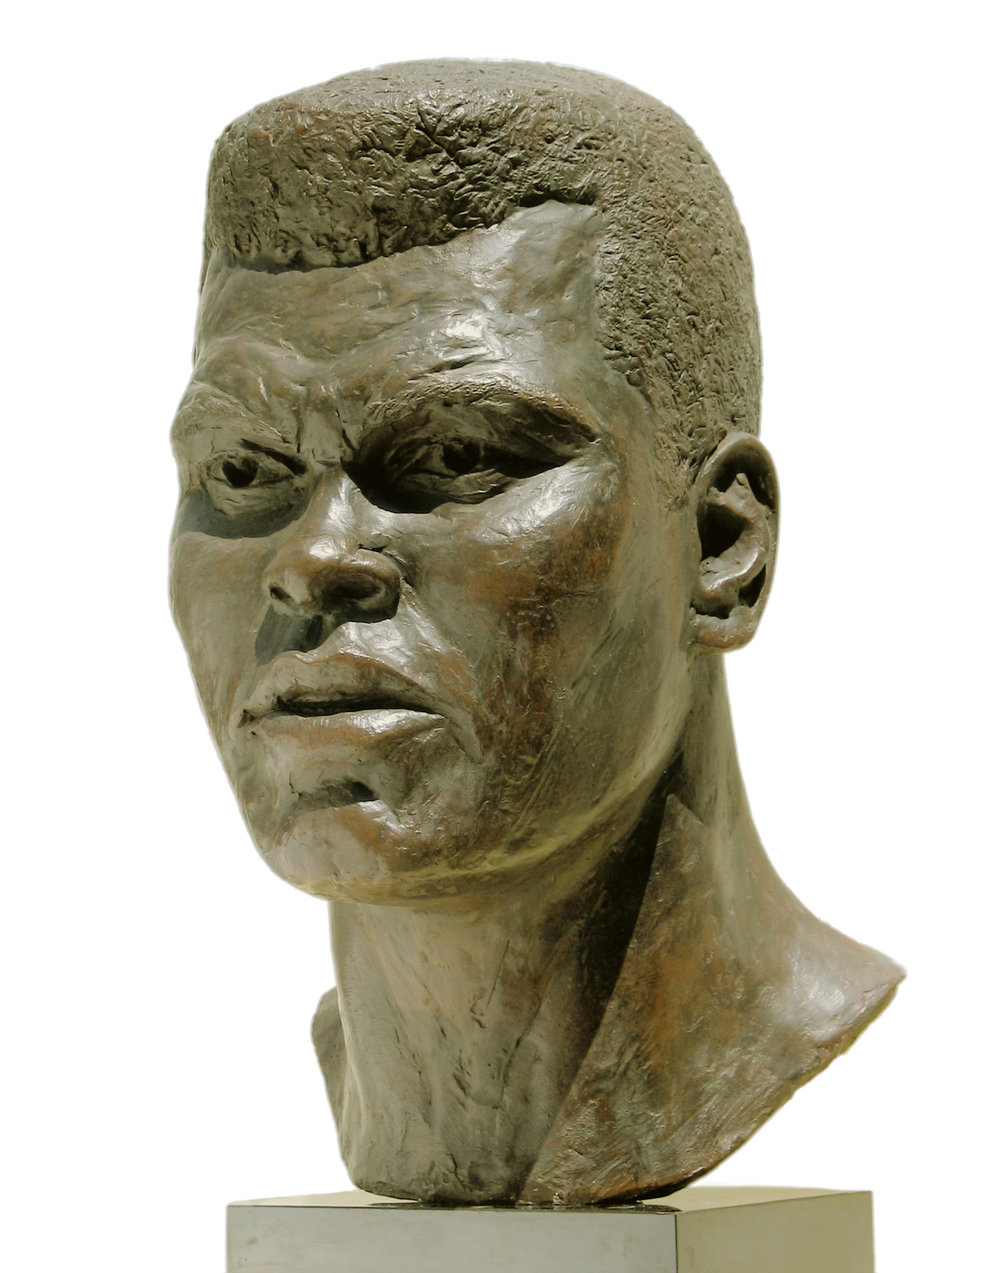 becoming-muhammad-ali-bronze-bronze-bronze-over-life-size-02.jpg